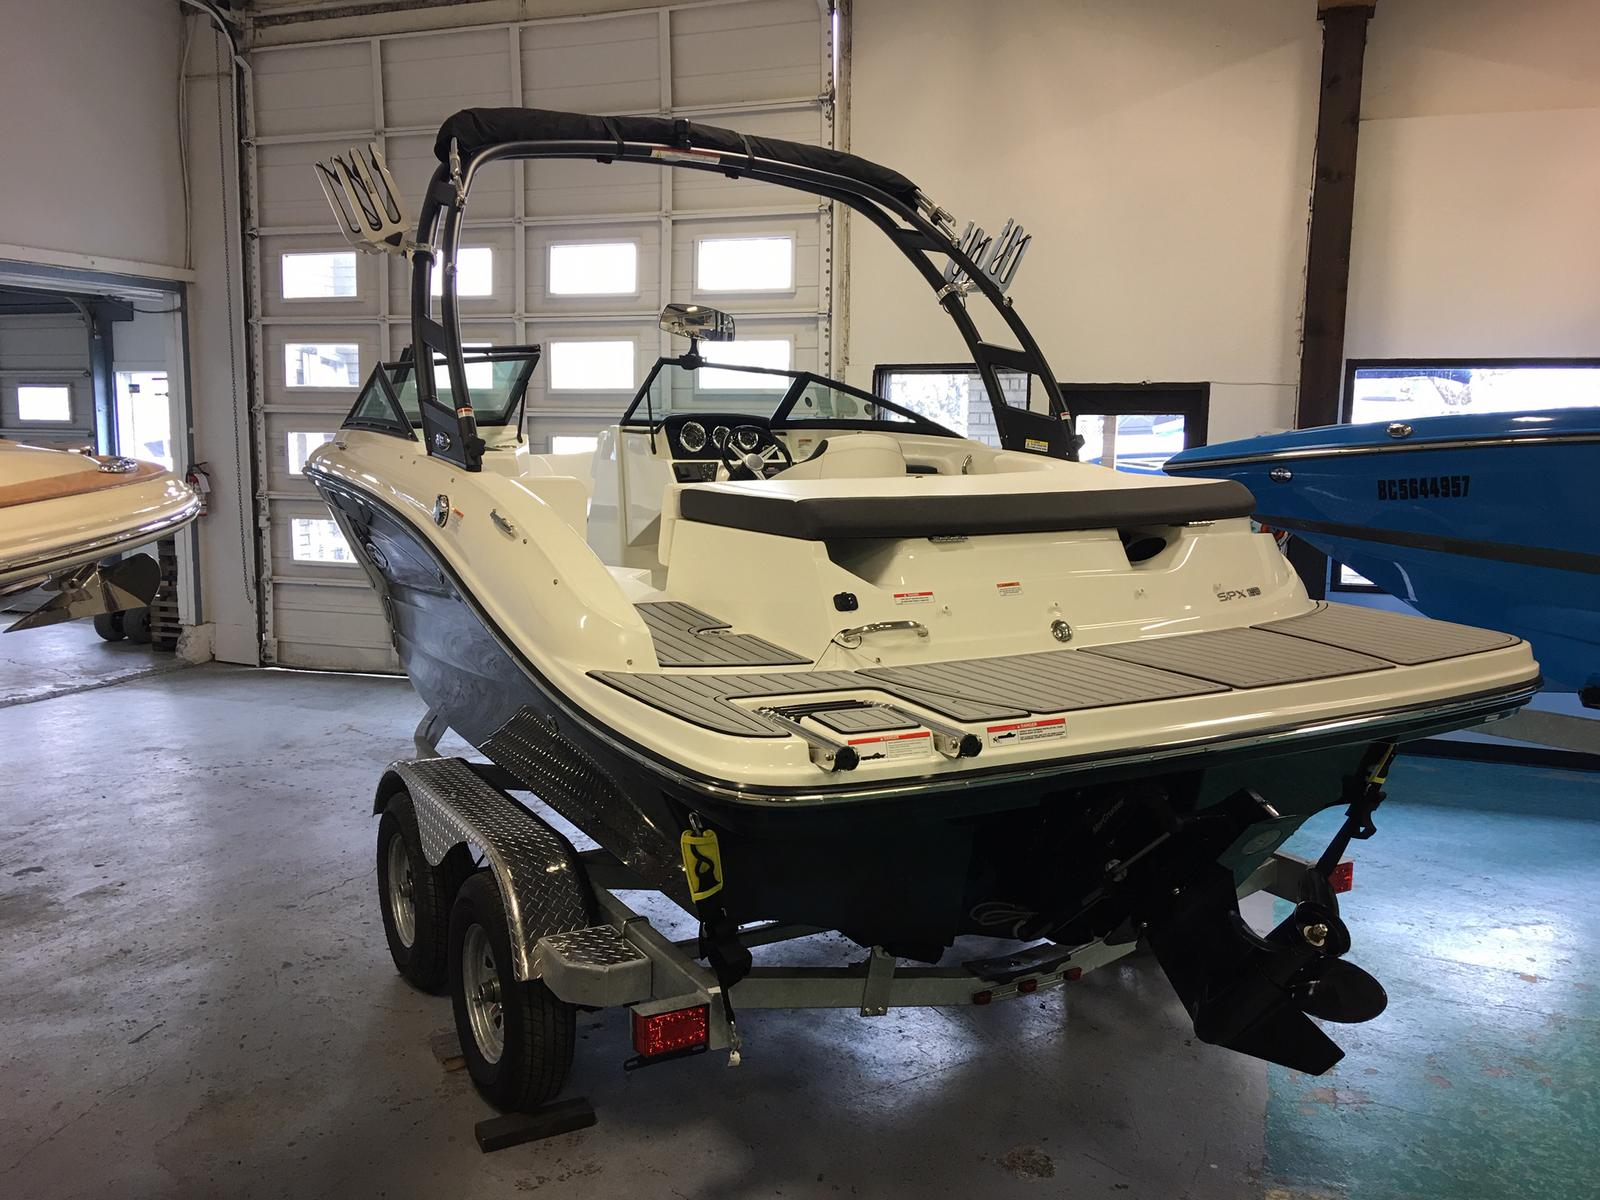 2019 Sea Ray boat for sale, model of the boat is SPX 190 & Image # 2 of 14